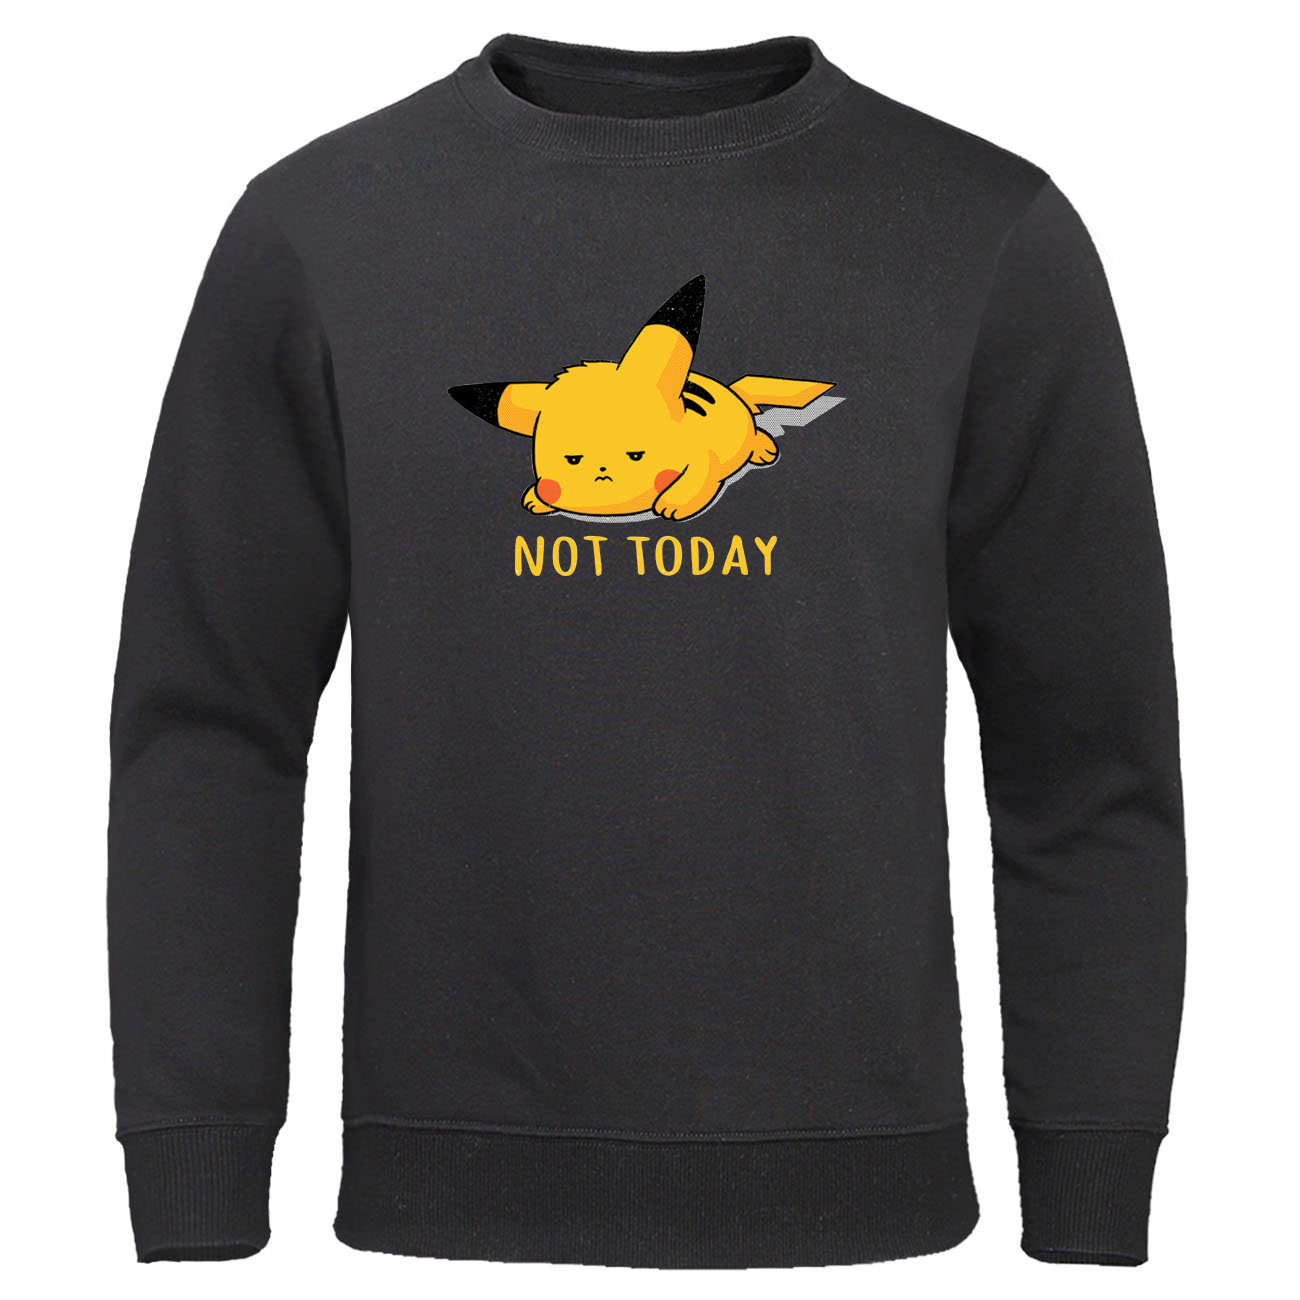 Cute Lazy Pikachu Men Sweatshirts NOT TODAY Print Men's Clothing Pokemon Gaming Printed Mens Hoodie Sweatshirt Fleece Streetwear